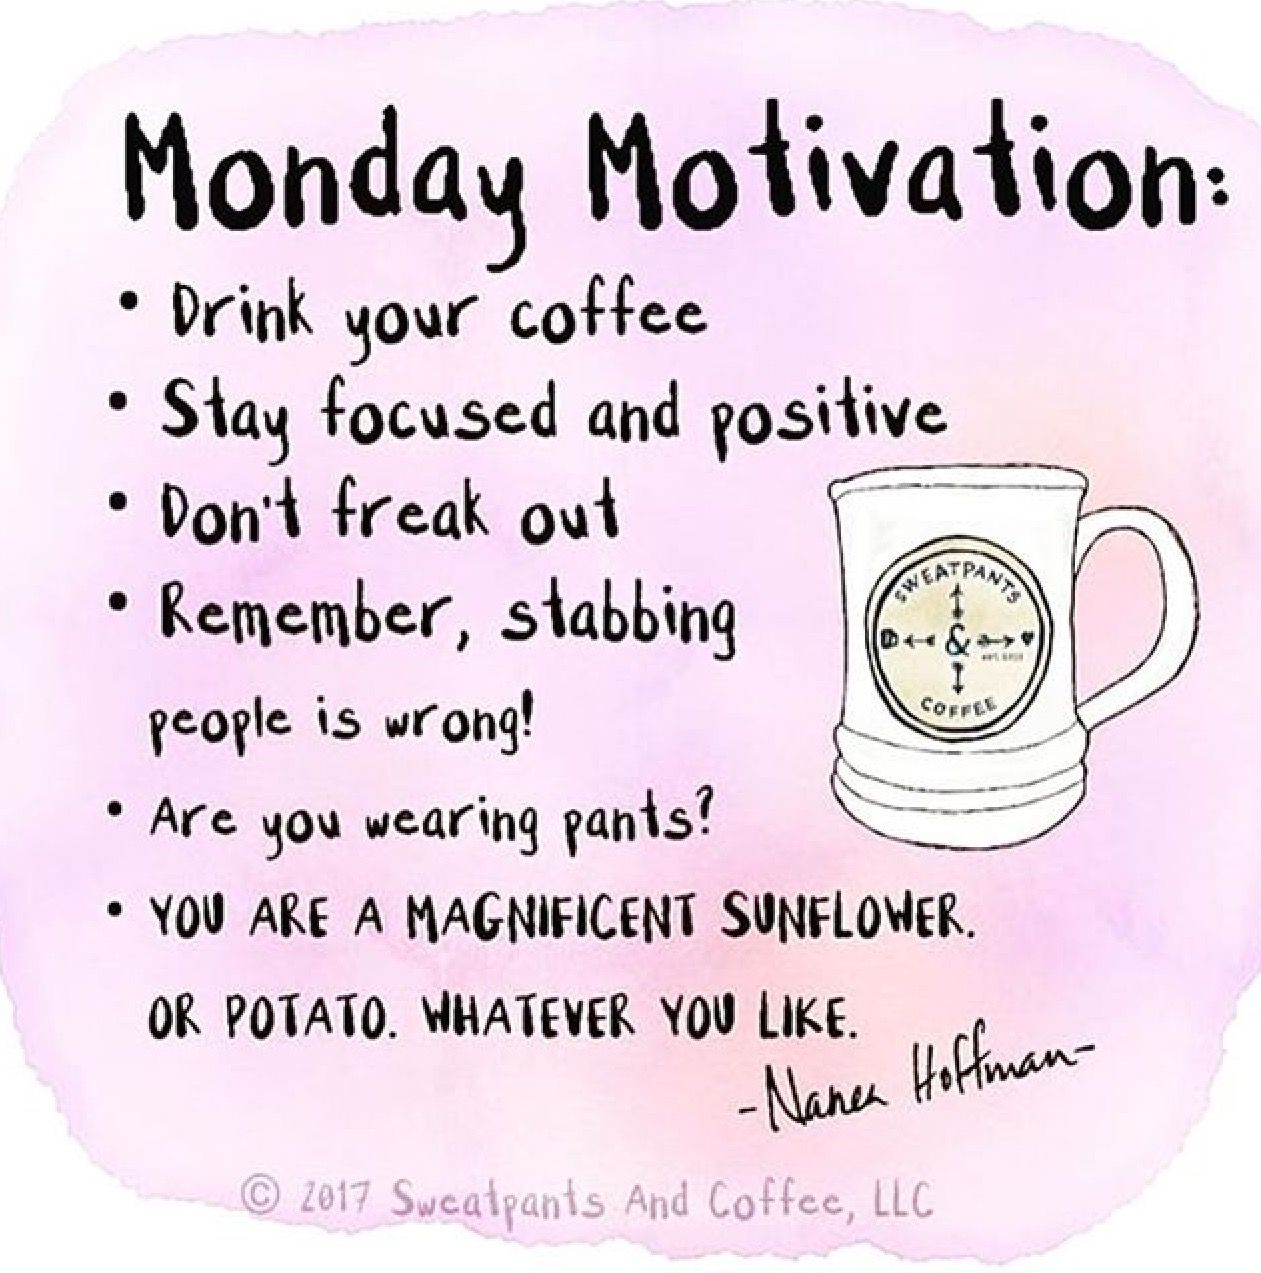 Funny Monday Motivational Quotes For Work